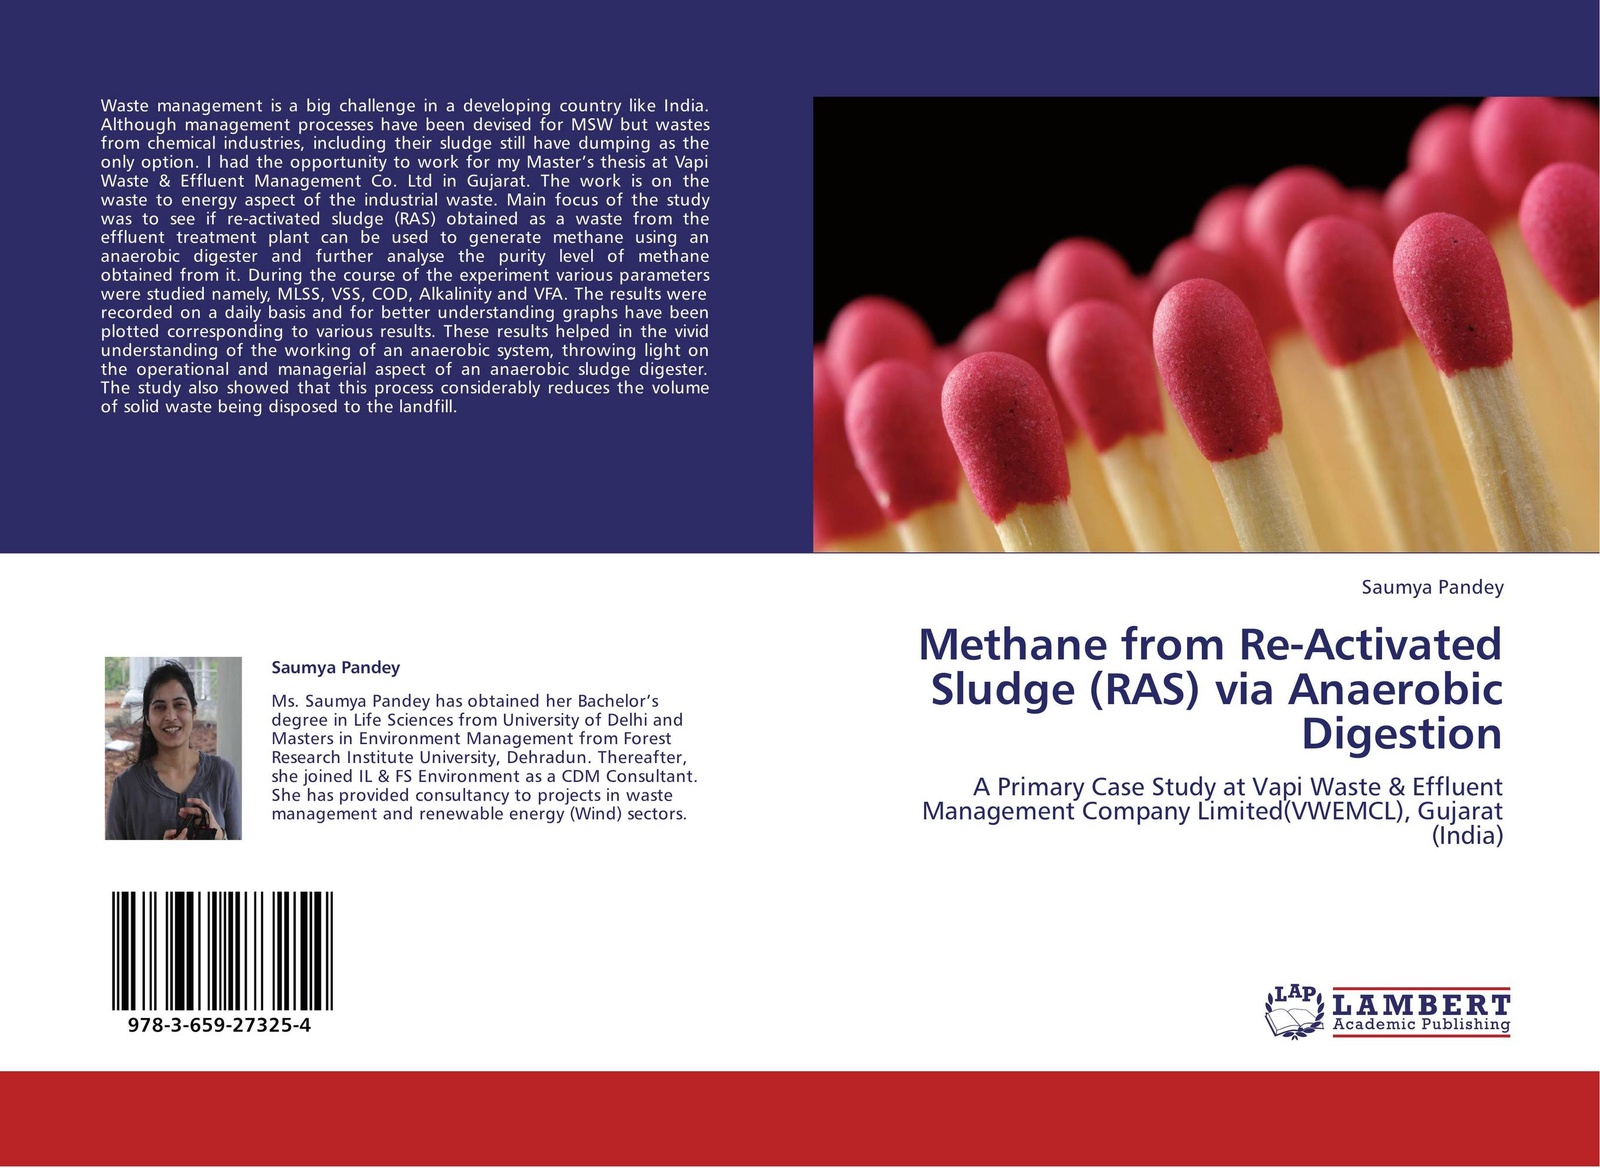 Saumya Pandey Methane from Re-Activated Sludge (RAS) via Anaerobic Digestion alireza bahadori waste management in the chemical and petroleum industries